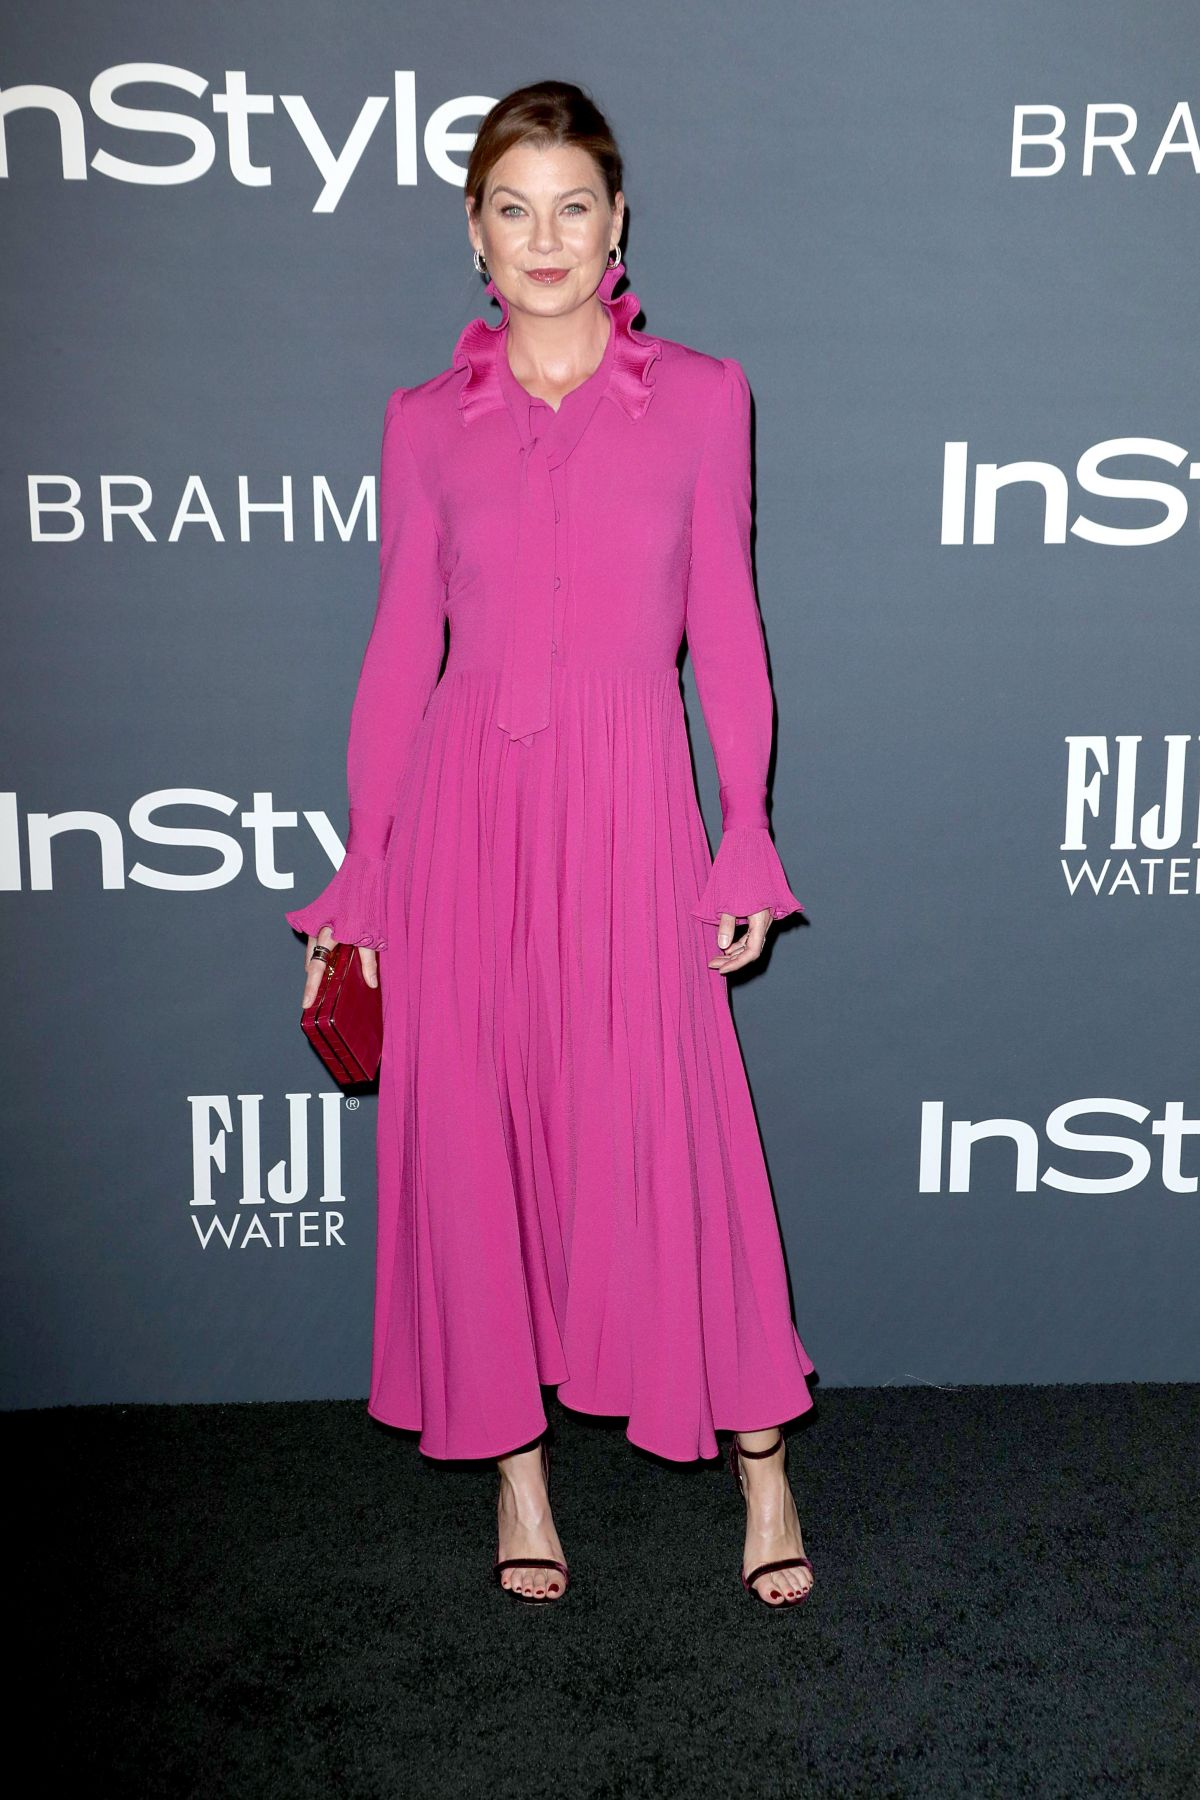 Ellen Pompeo At InStyle Awards in Los Angeles